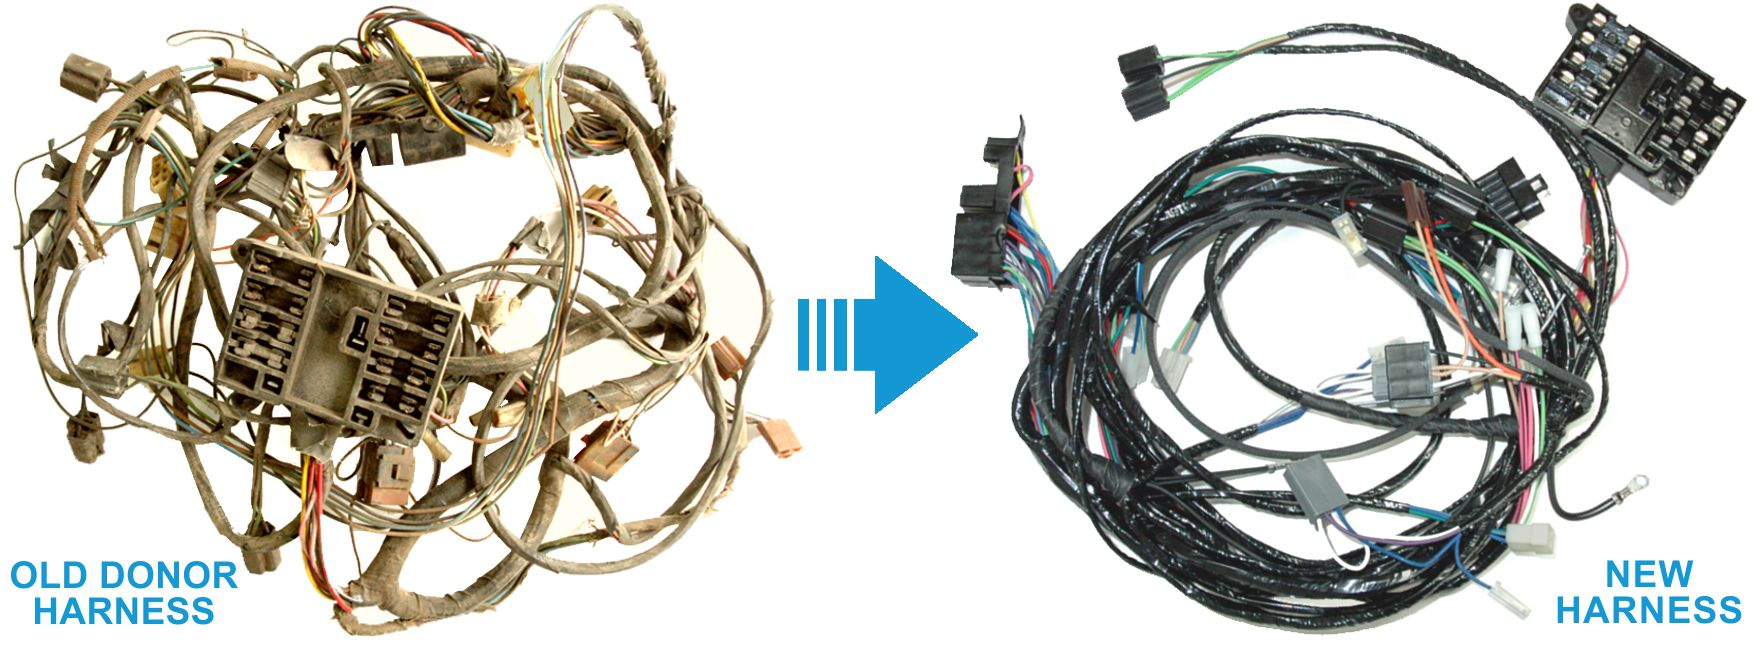 Exact Oem Reproduction Wiring Harnesses For Classic Muscle Cars What Is Harness Donor